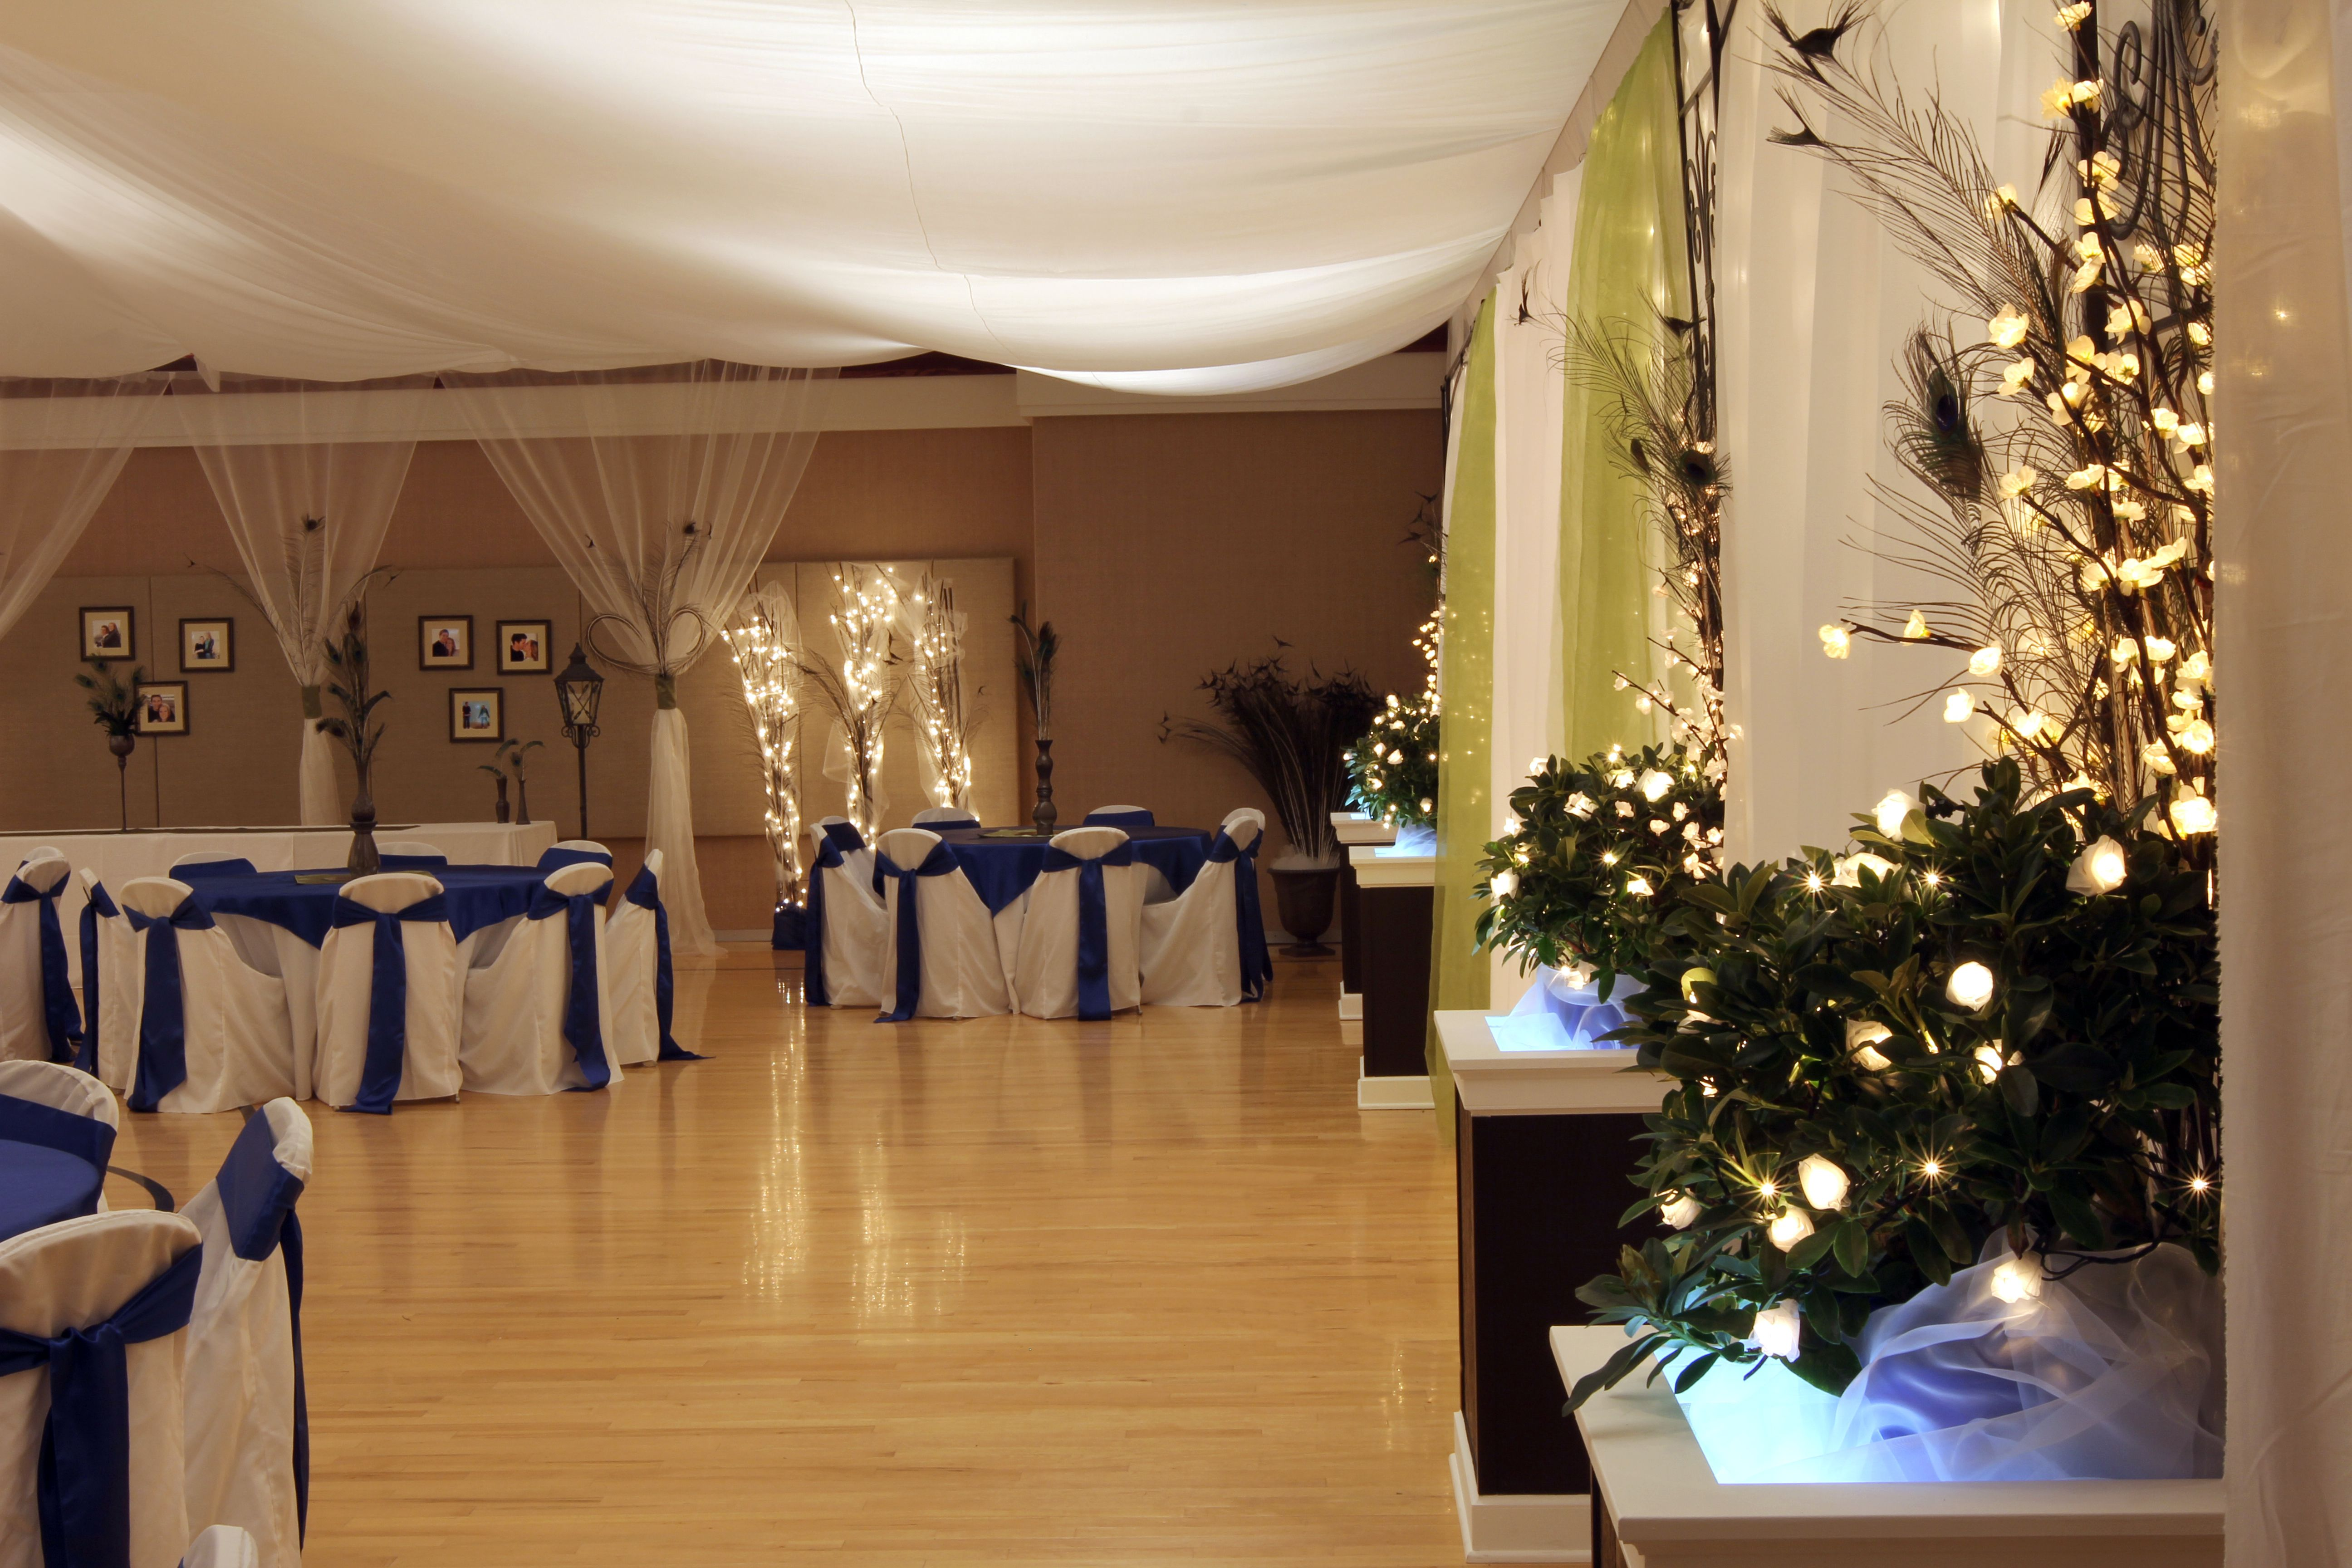 View Wedding Decor: Side View Of The Backdrop @ Grandson's Wedding Reception